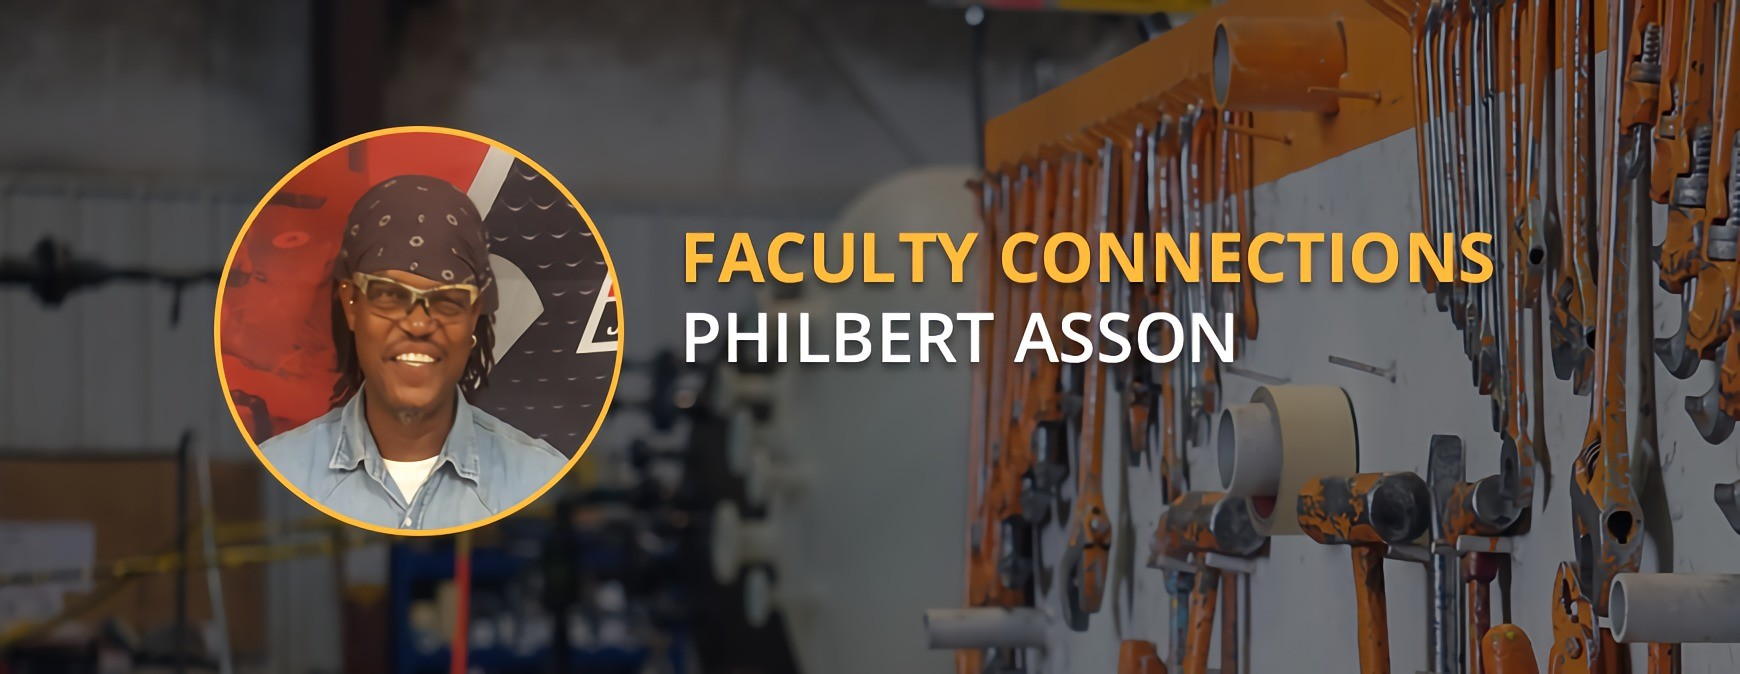 Philbert Asson faculty connection